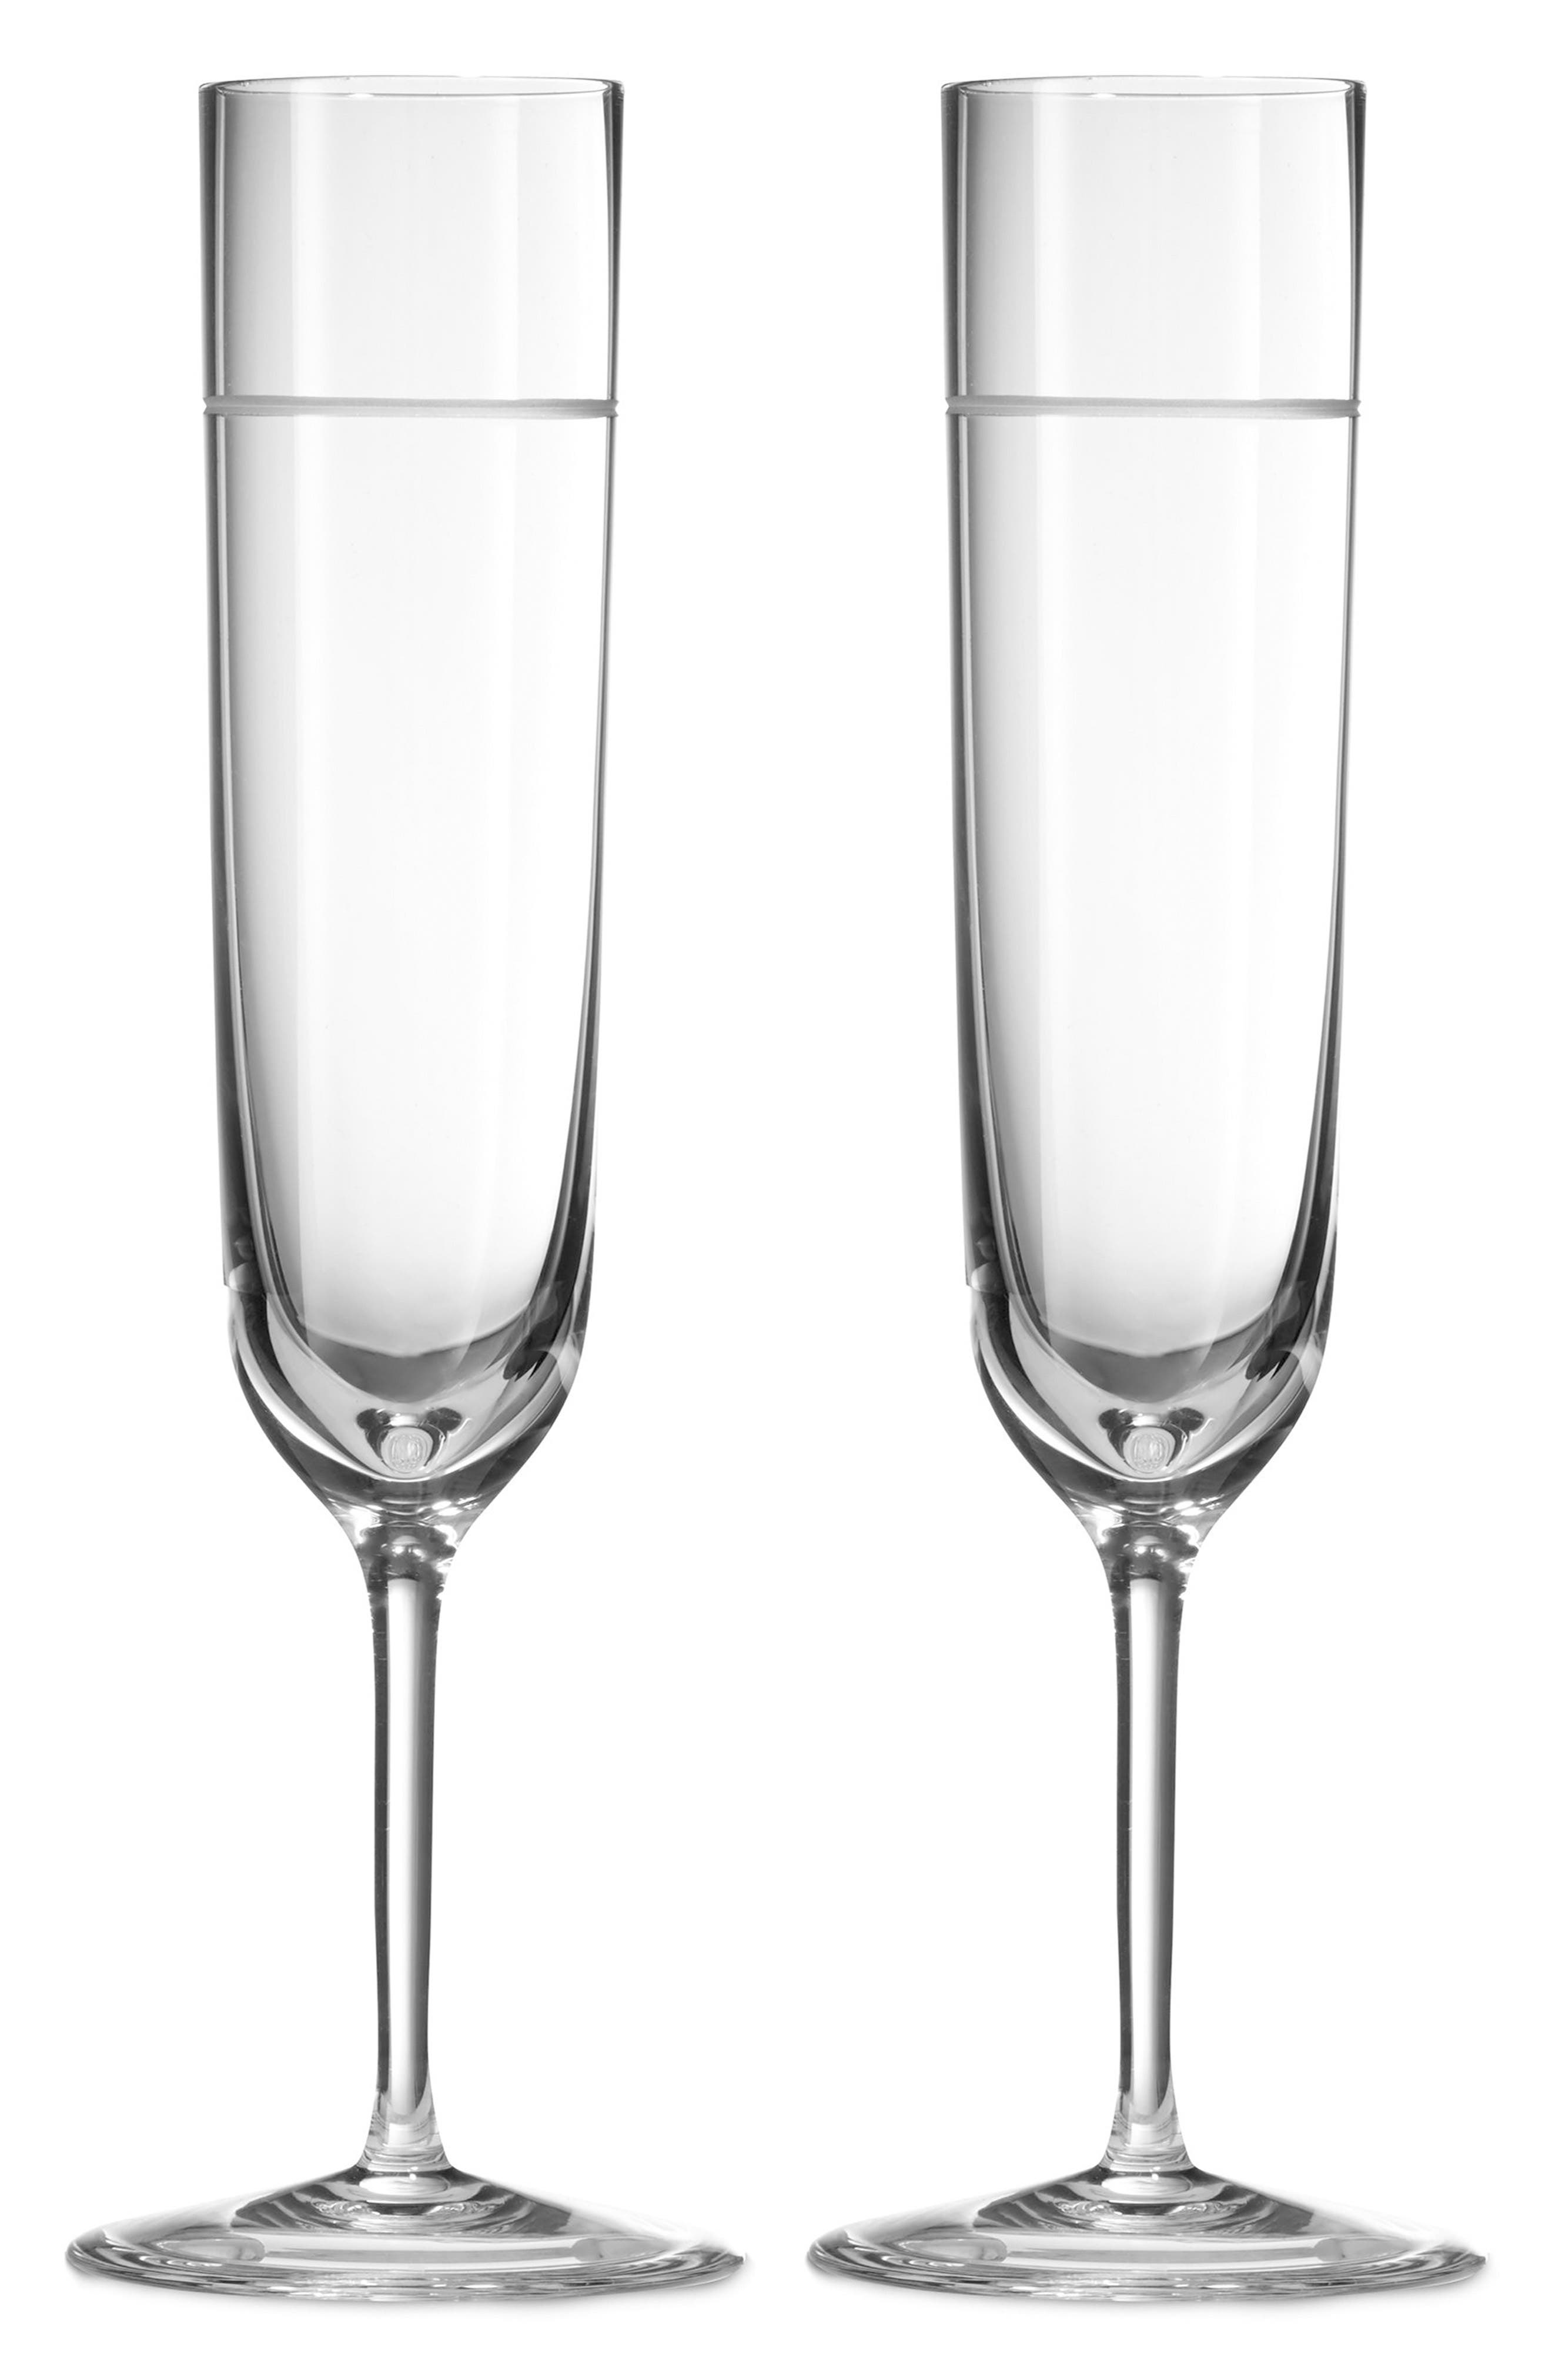 Vera Wang x Wedgwood Bande Set of 2 Crystal Champagne Flutes